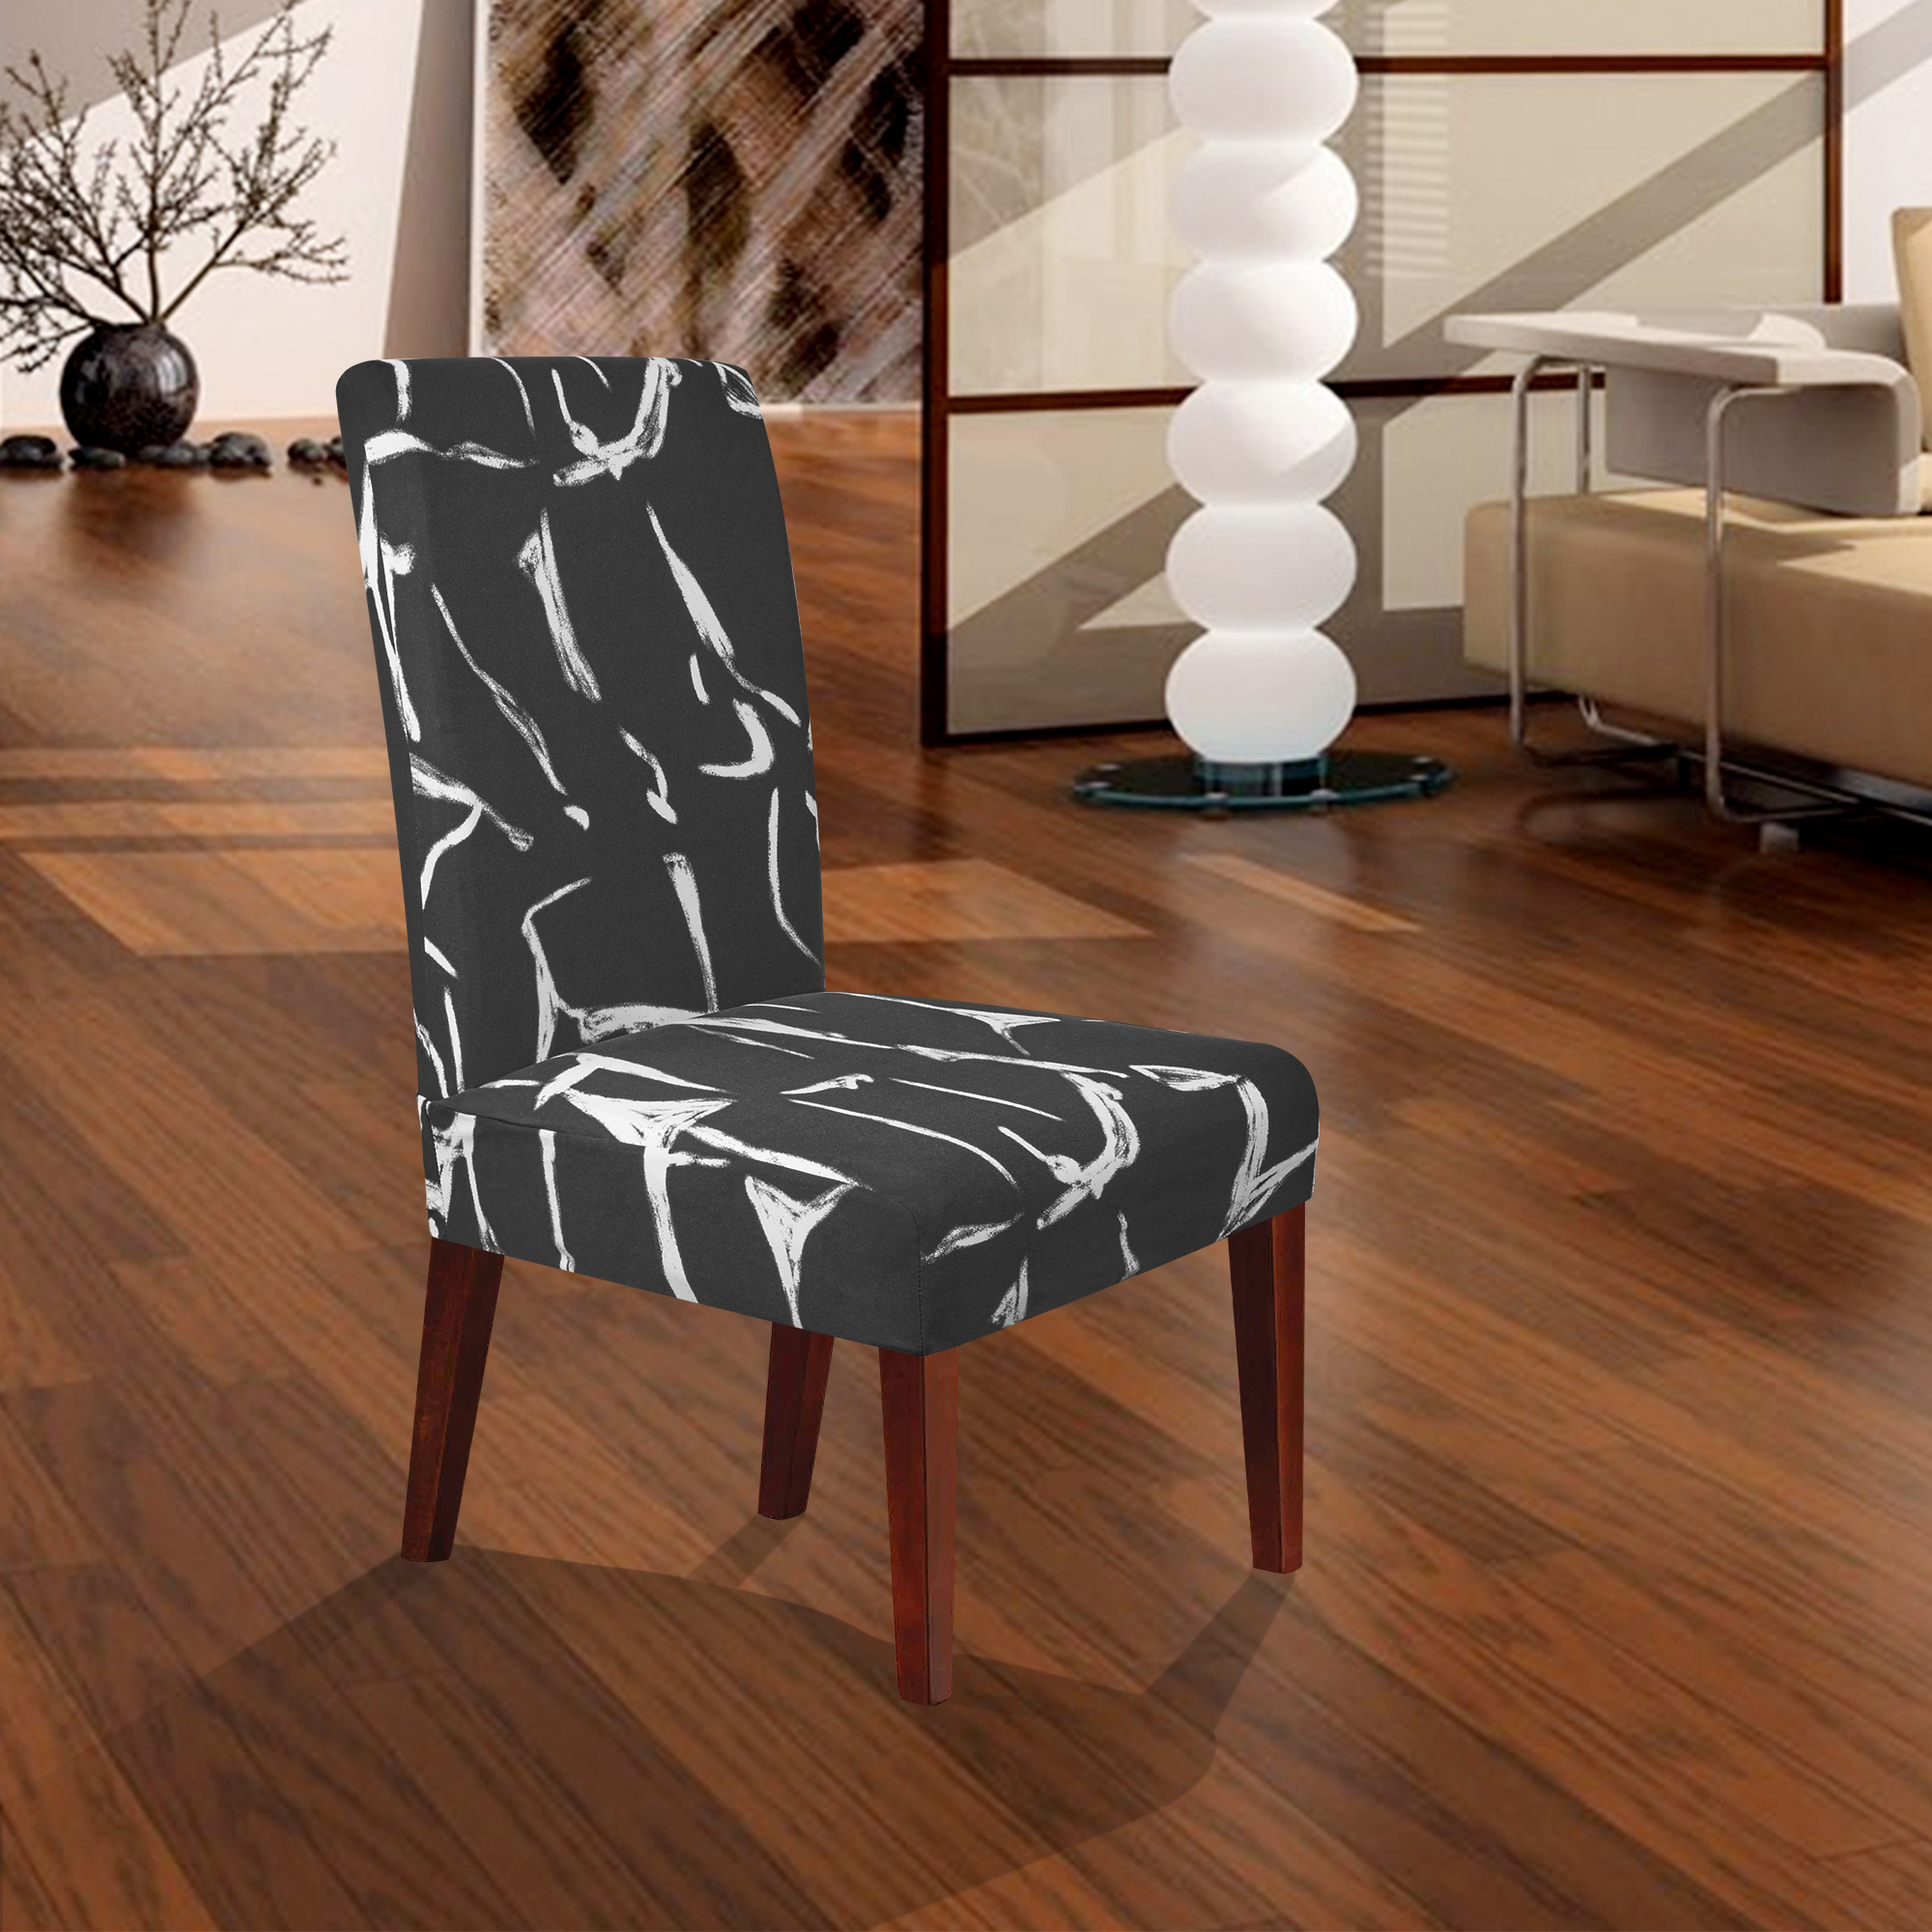 party chair covers walmart counter height table and chairs set soft spandex stretchy banquet home hotel wedding seat cover short dining slipcovers bk